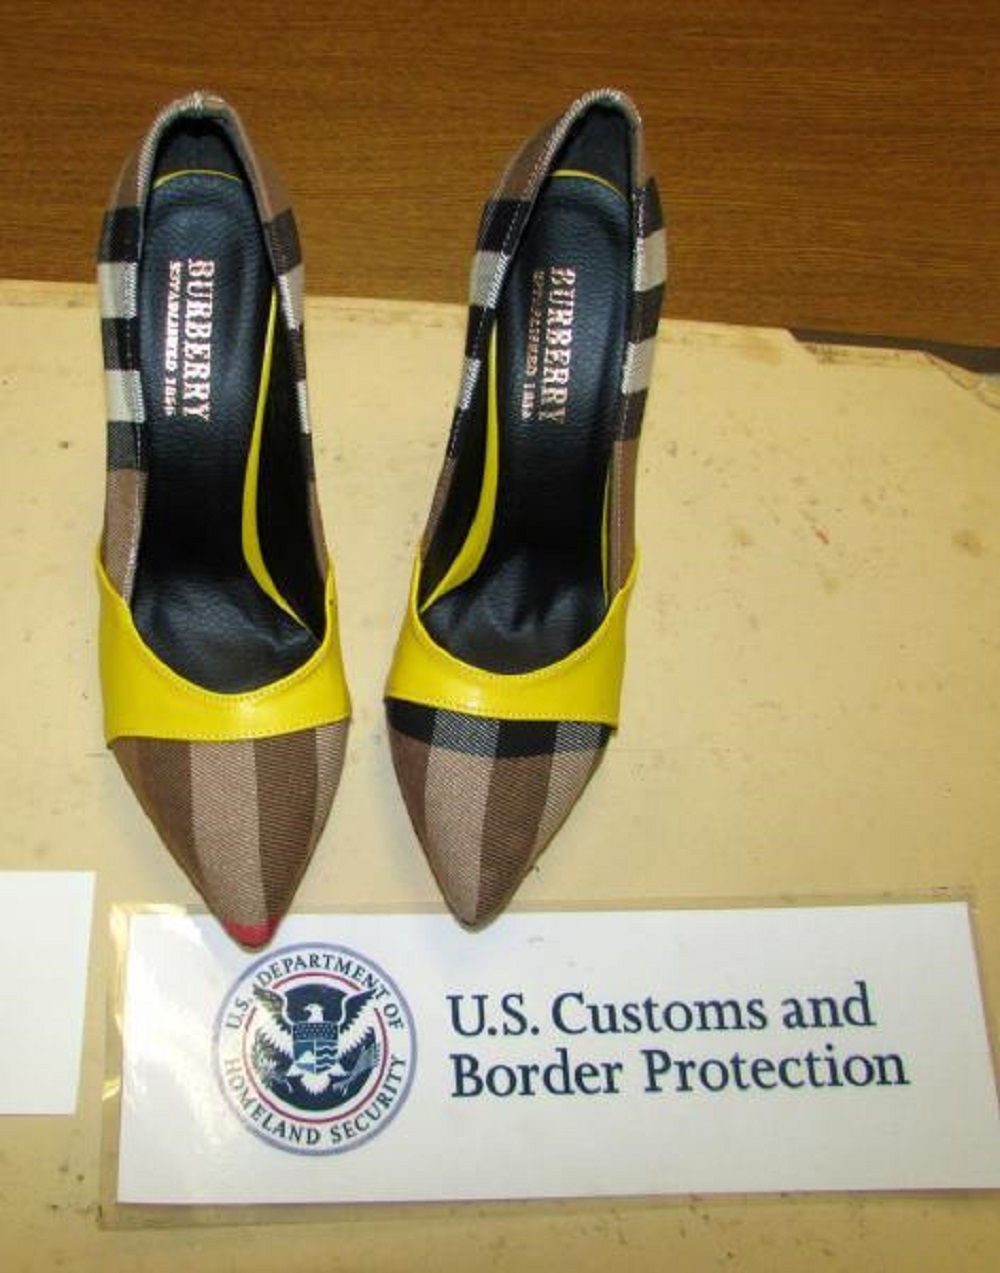 CBP seized a shipment of counterfeit goods with designer brands while inspecting express delivery parcels near Philadelphia Airport.